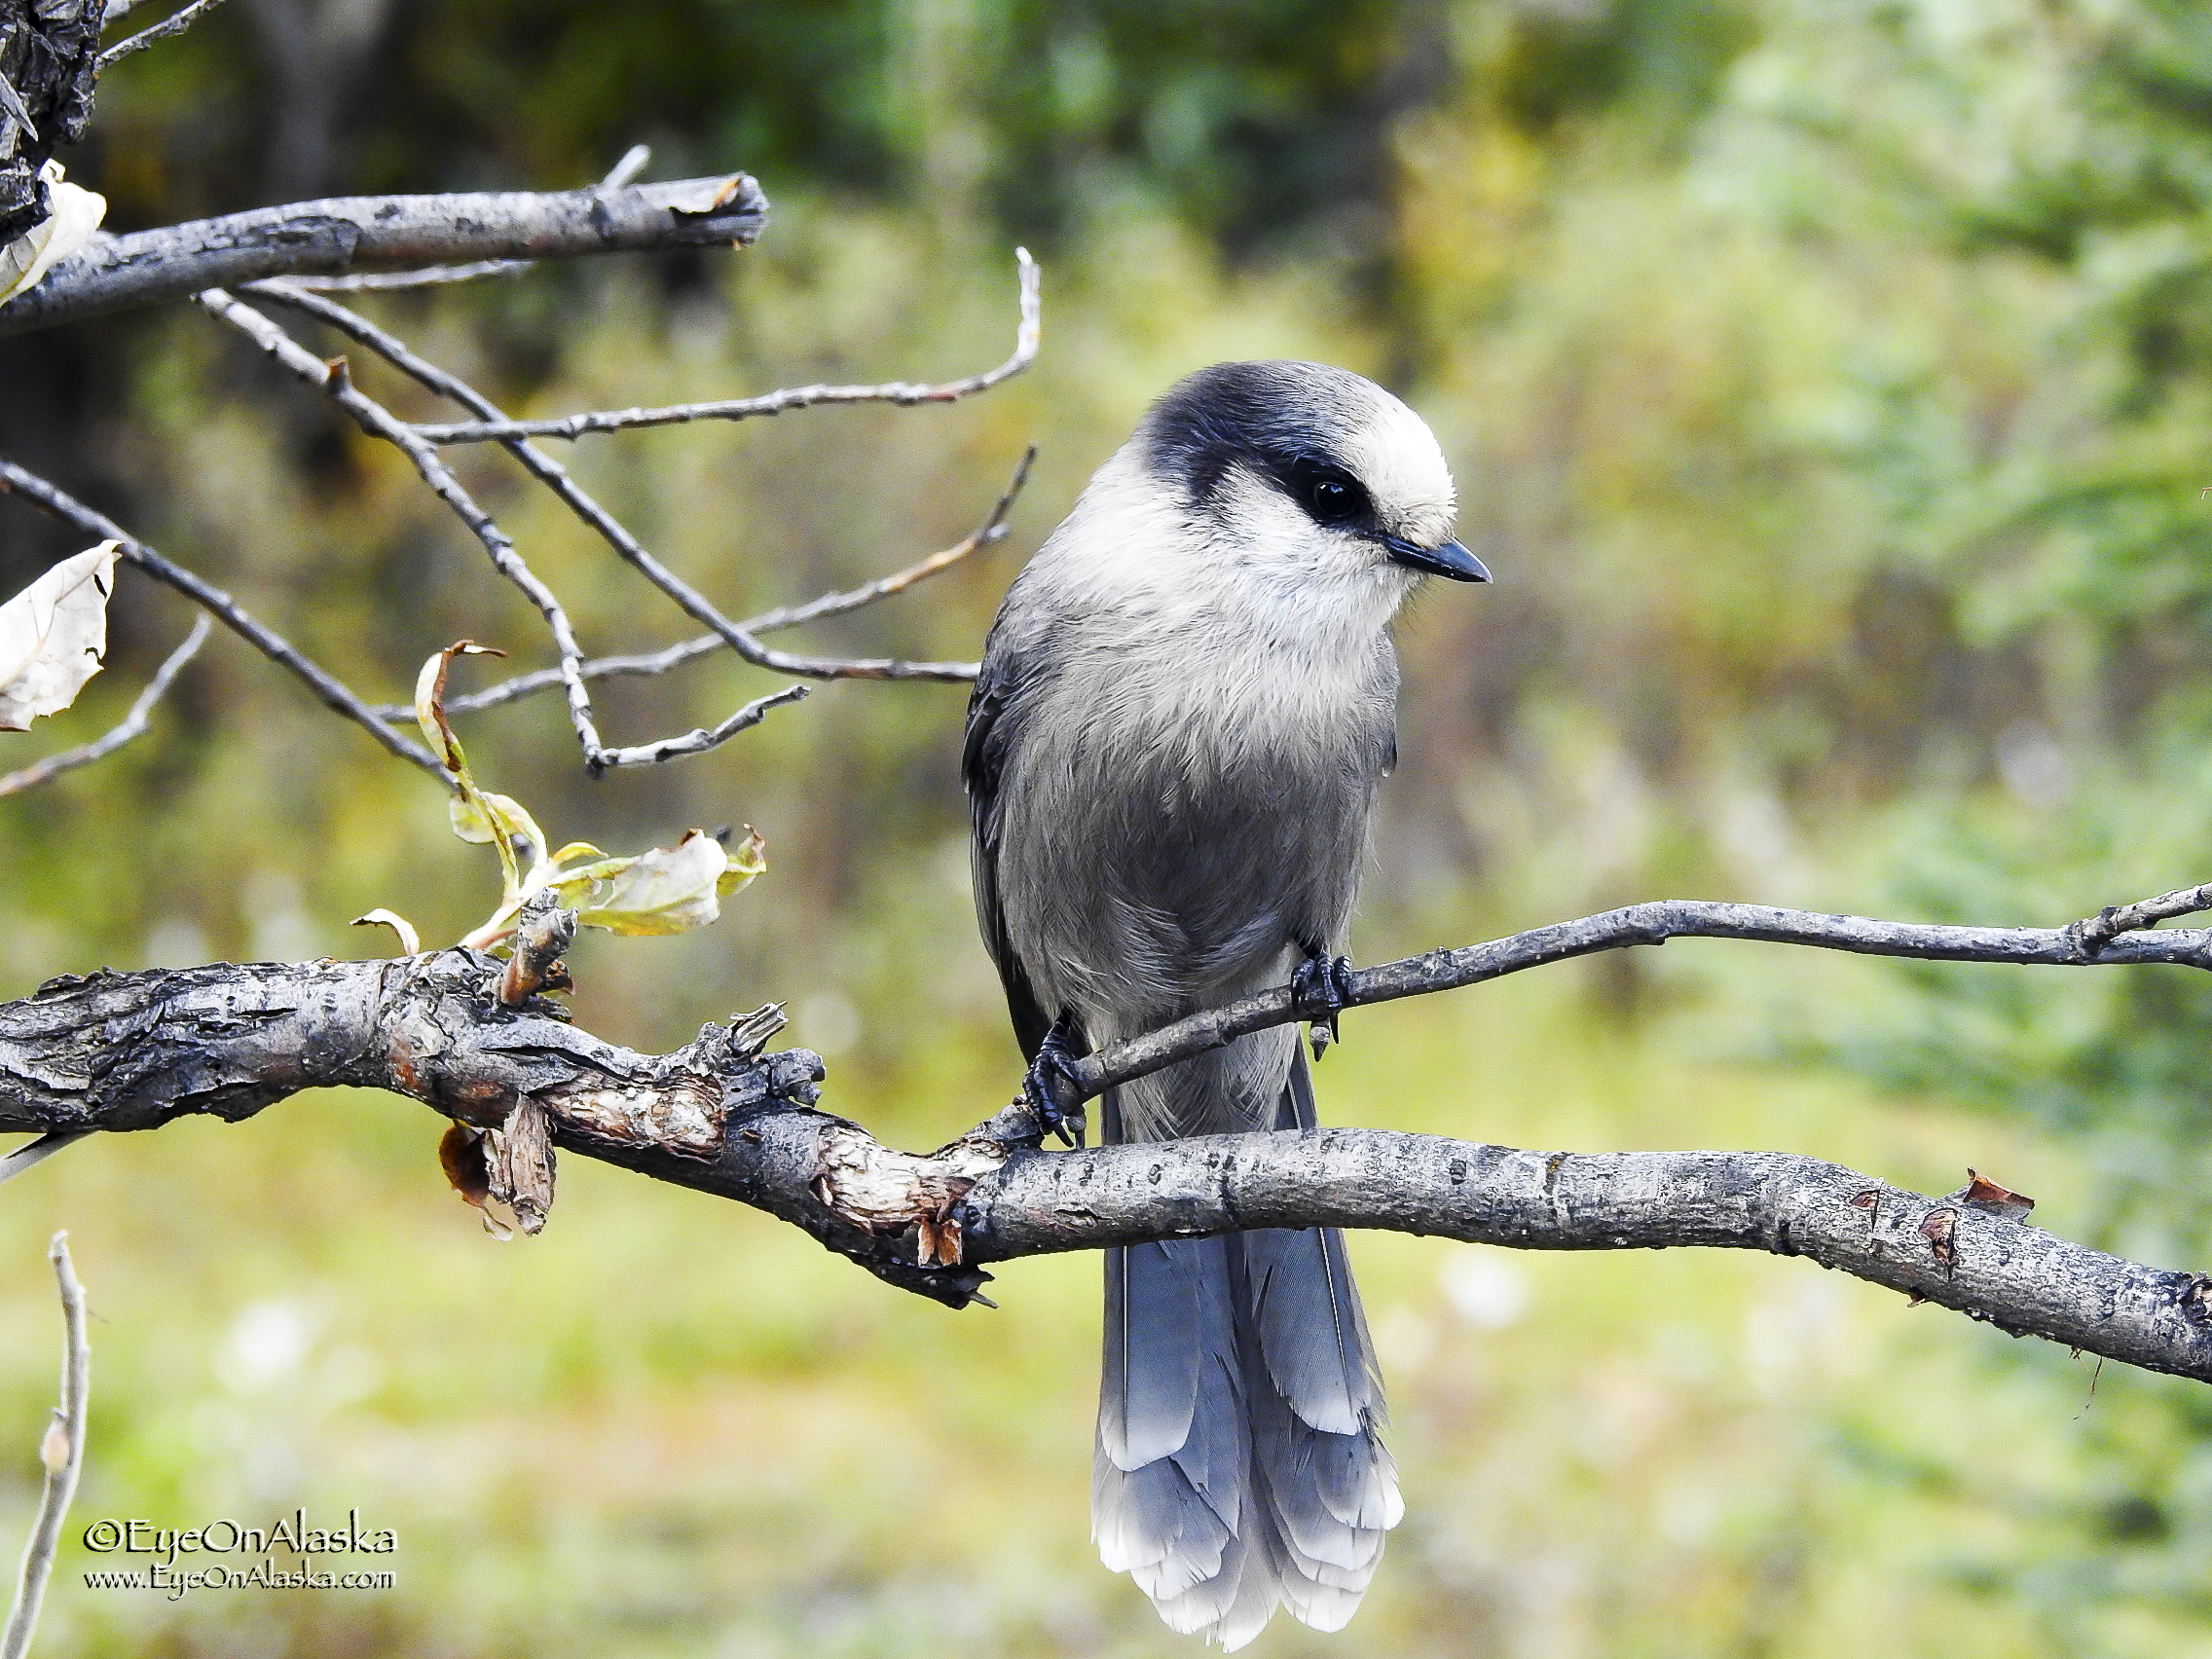 The Grey Jay's were out in force in the campground hoping someone would feed them.